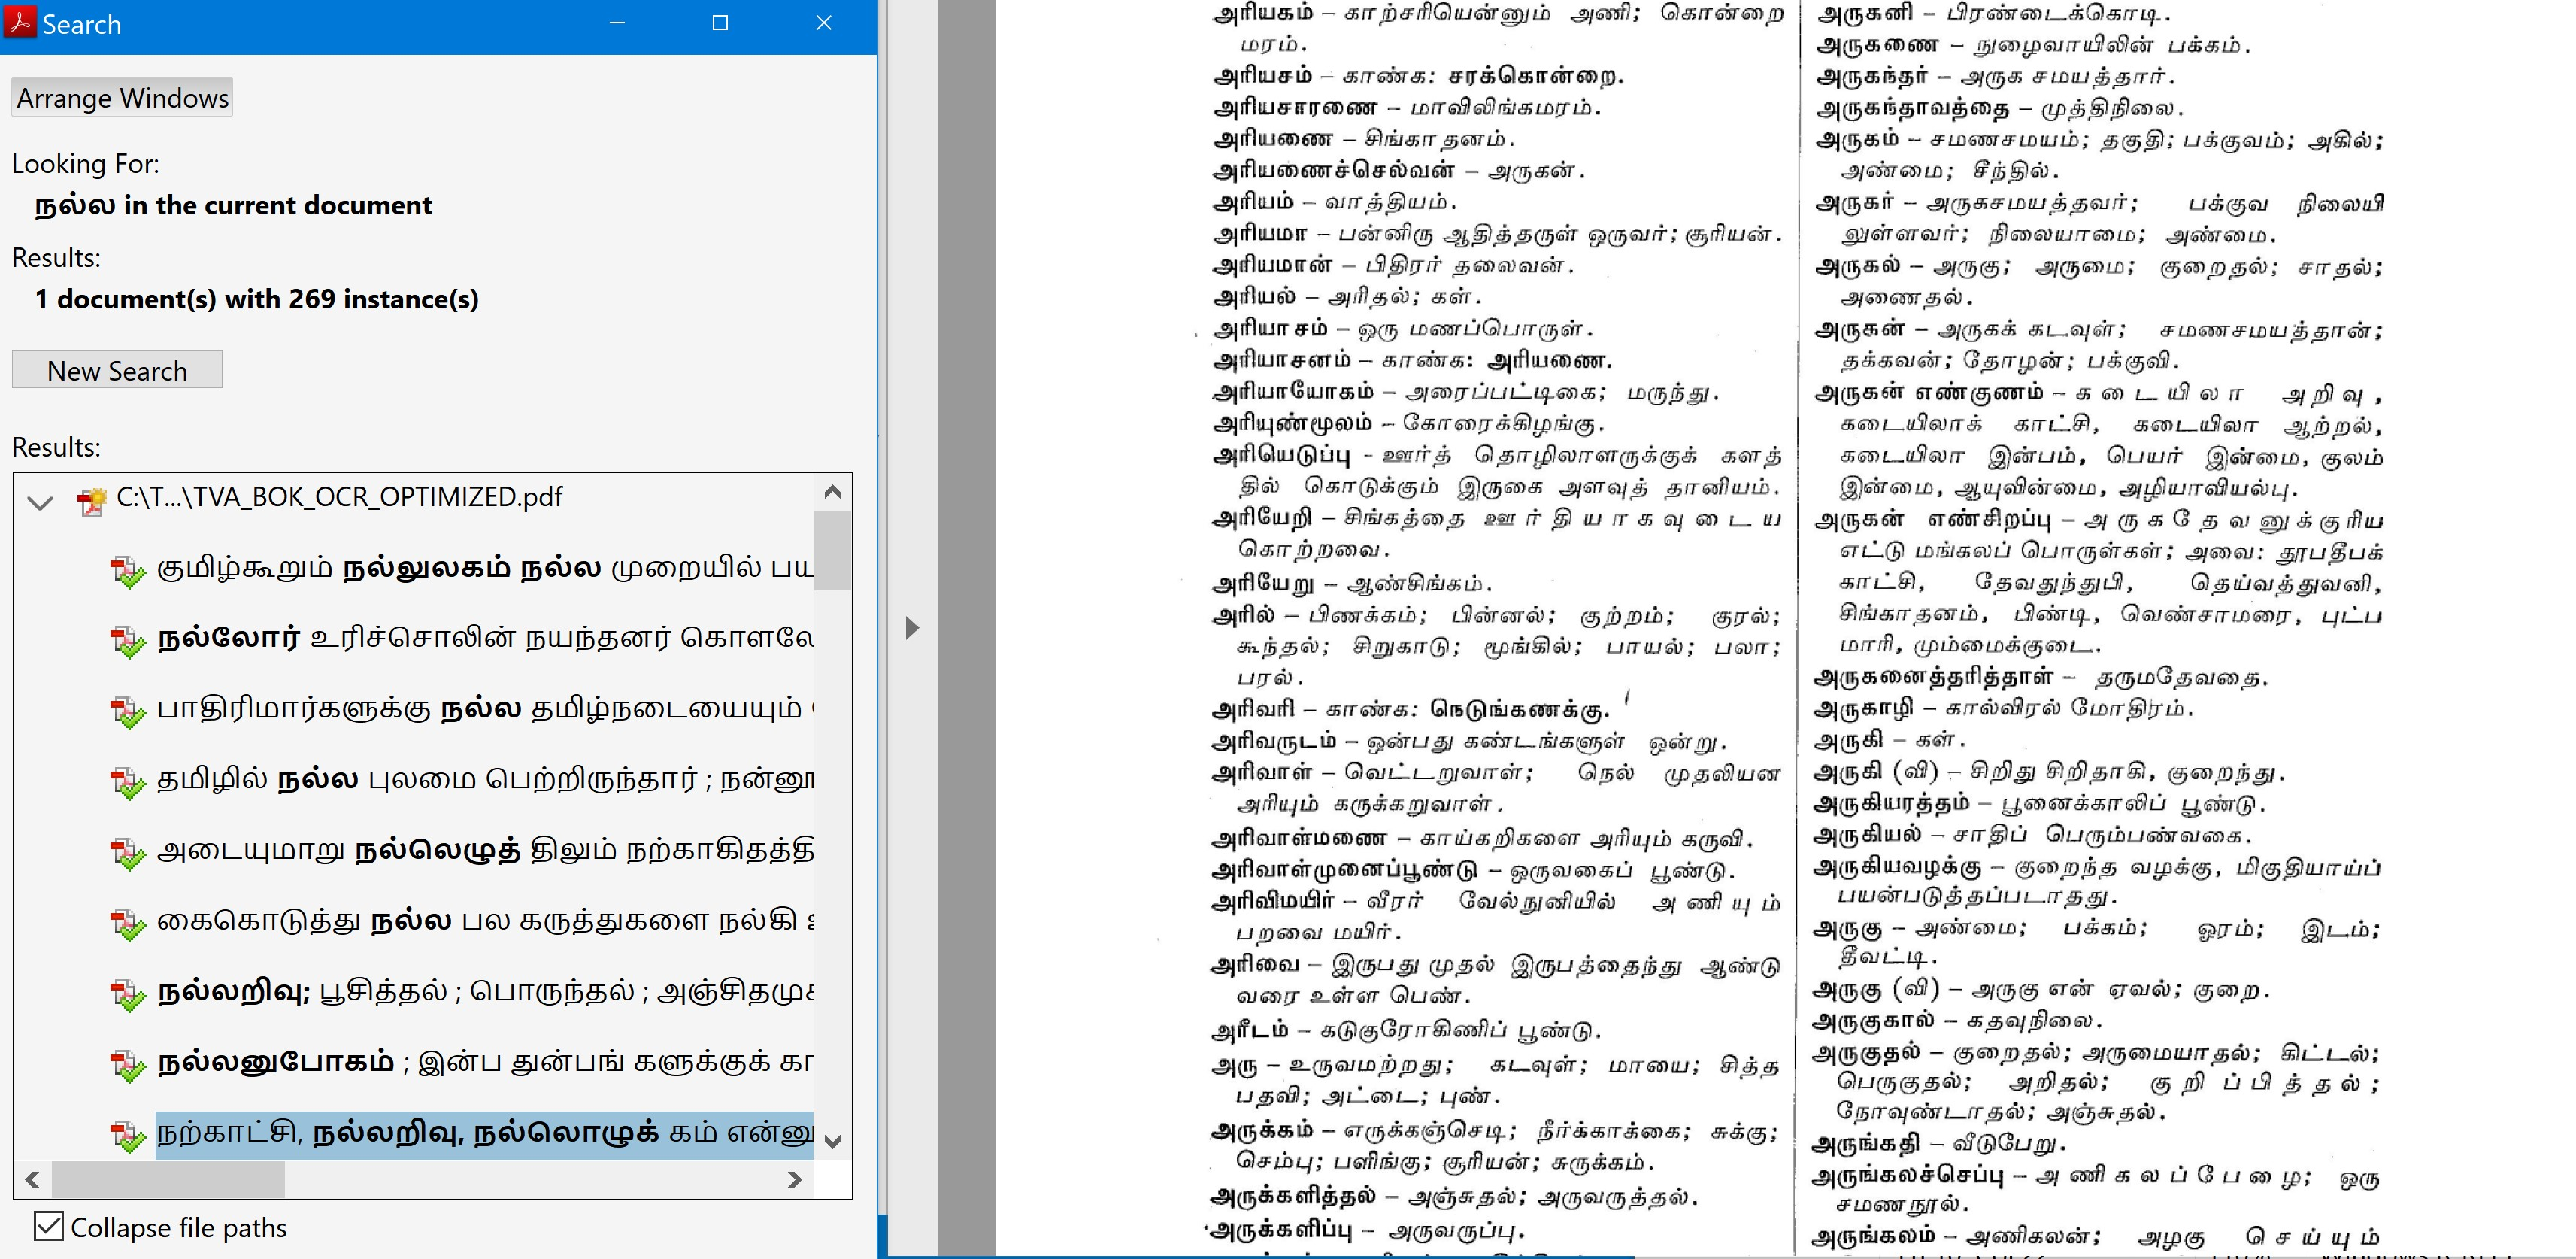 Searching in the ebook in Tamil works well